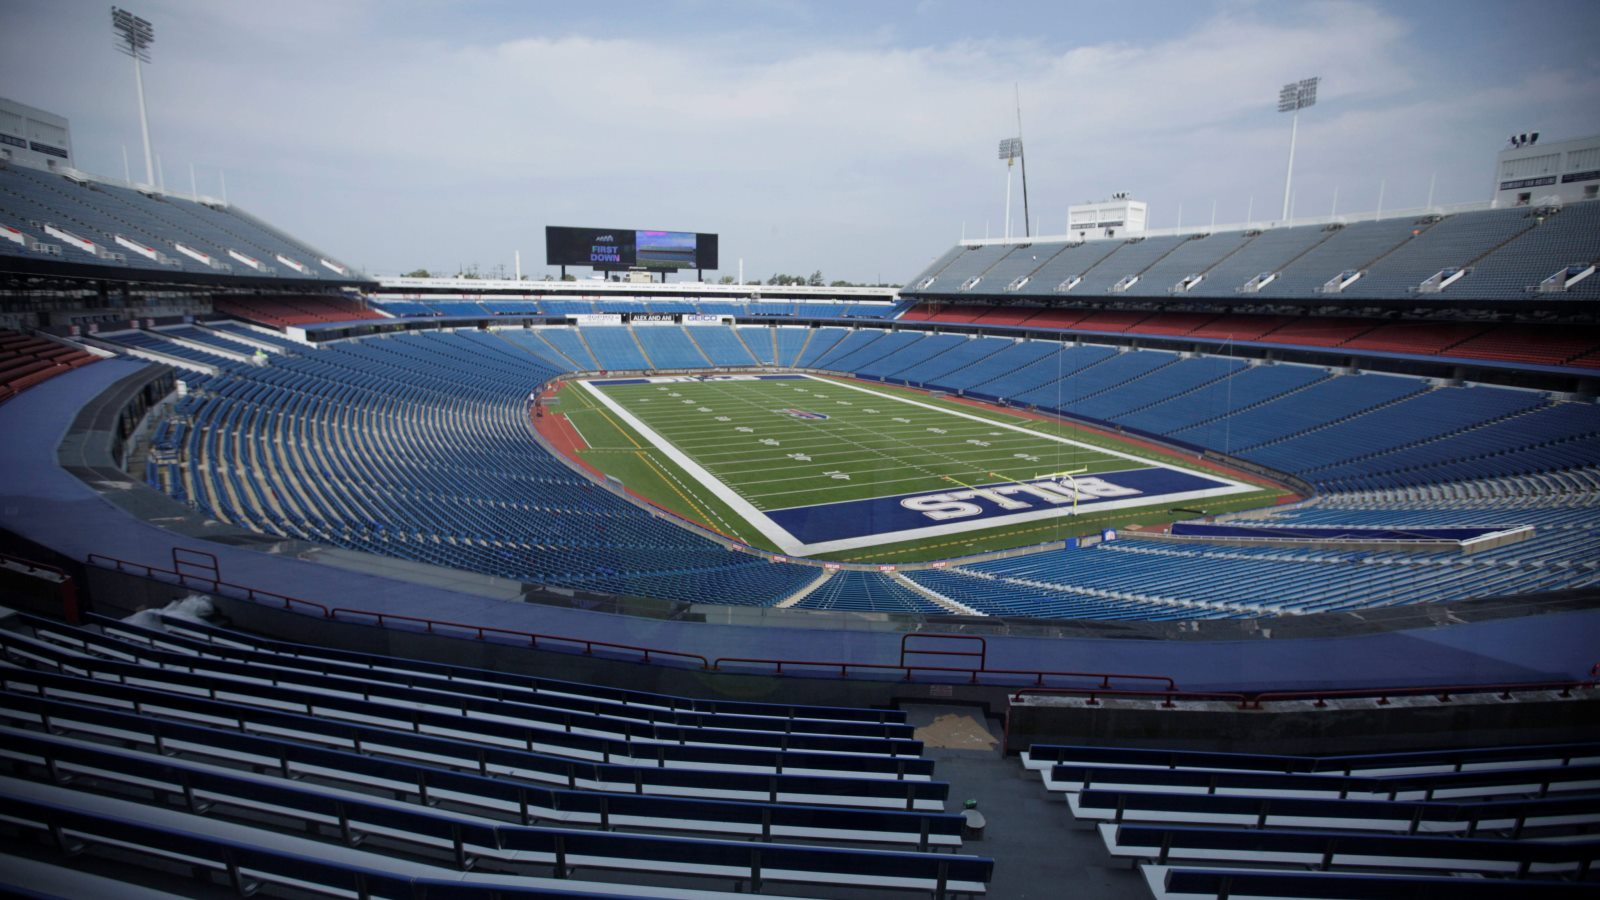 New practice field for Bills will be on Erie County land